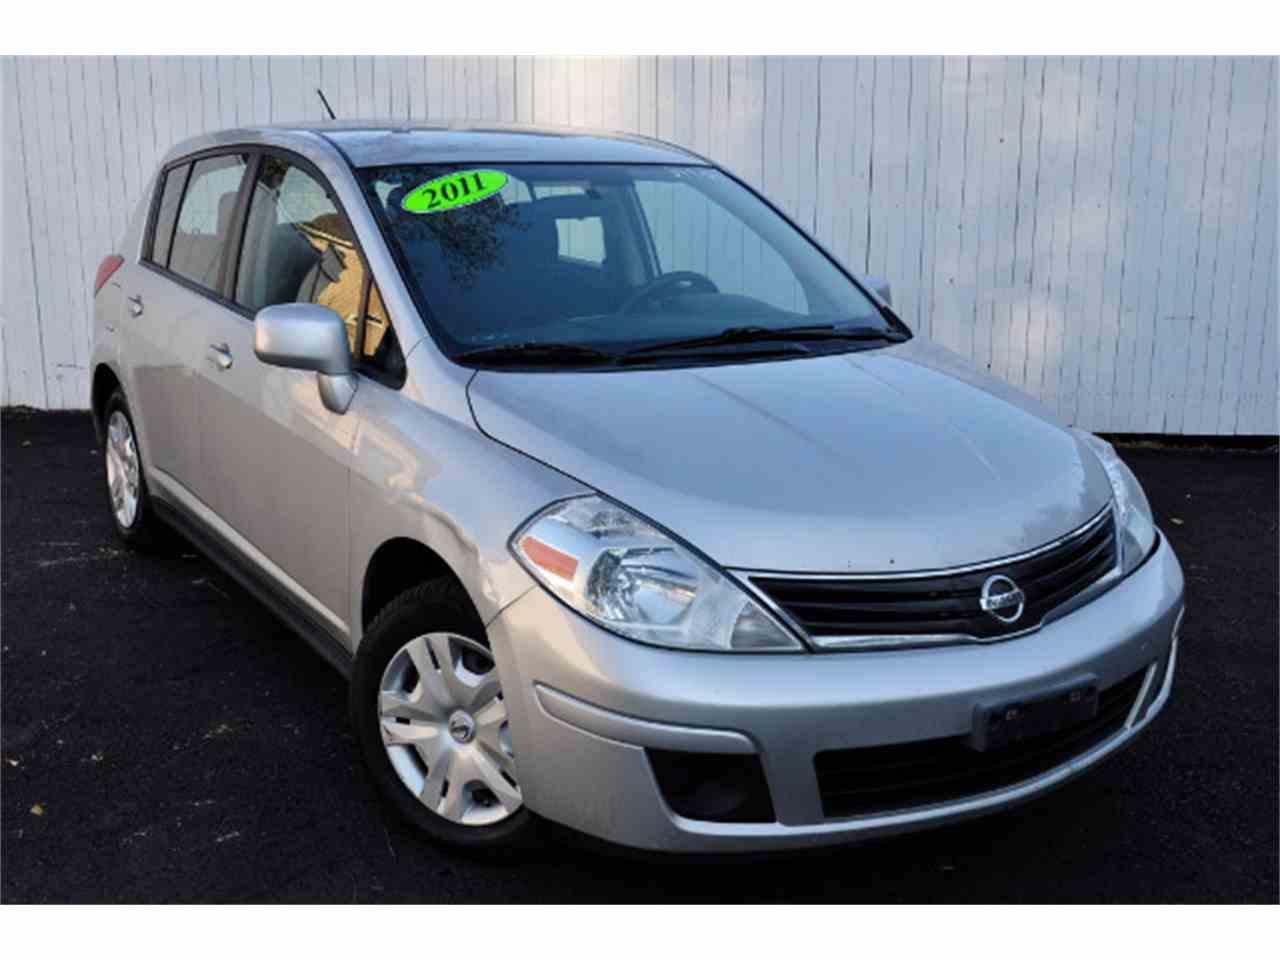 Large Picture of 2011 Versa located in New Hampshire - $3,995.00 Offered by Horseless Carriage - MDL5